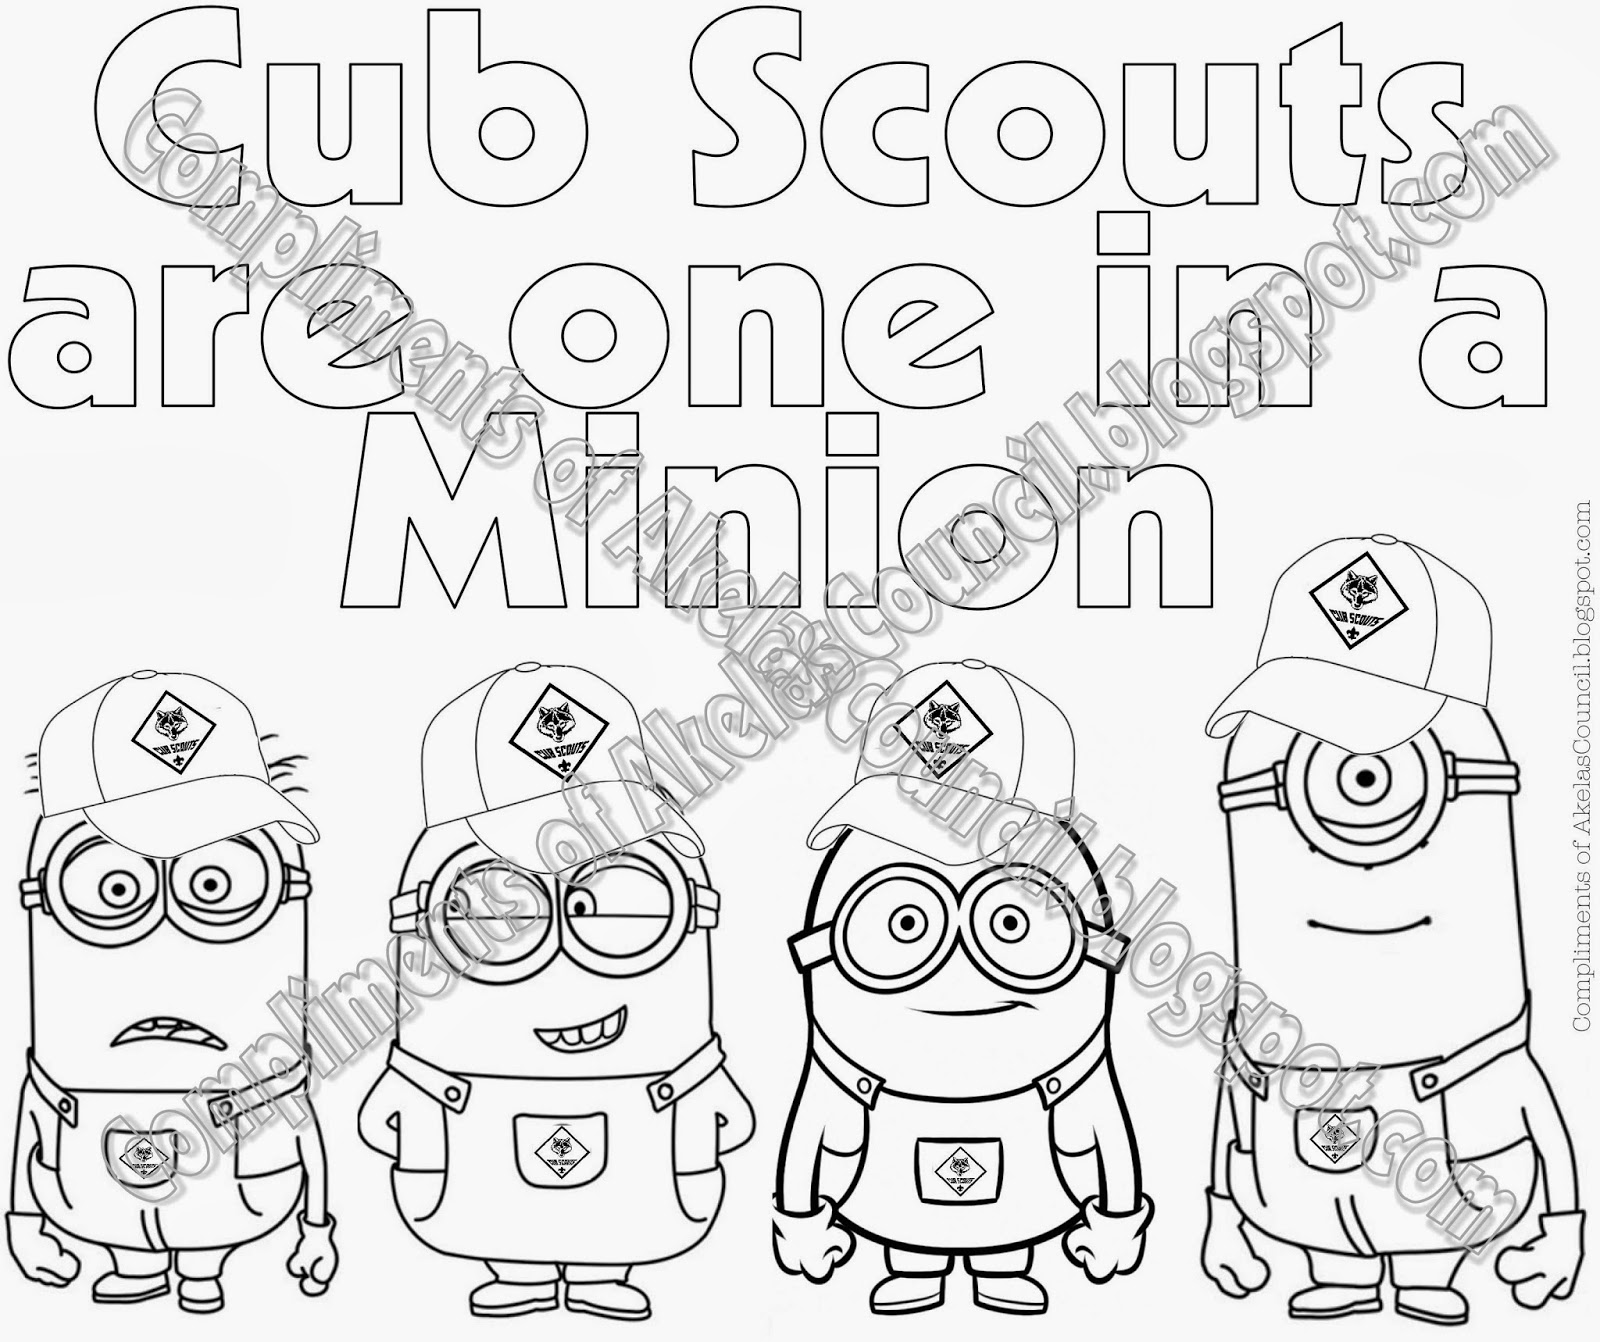 photo relating to Minion Printable Coloring Page titled Akelas Council Cub Scout Chief Doing exercises: Cub Scout Minions